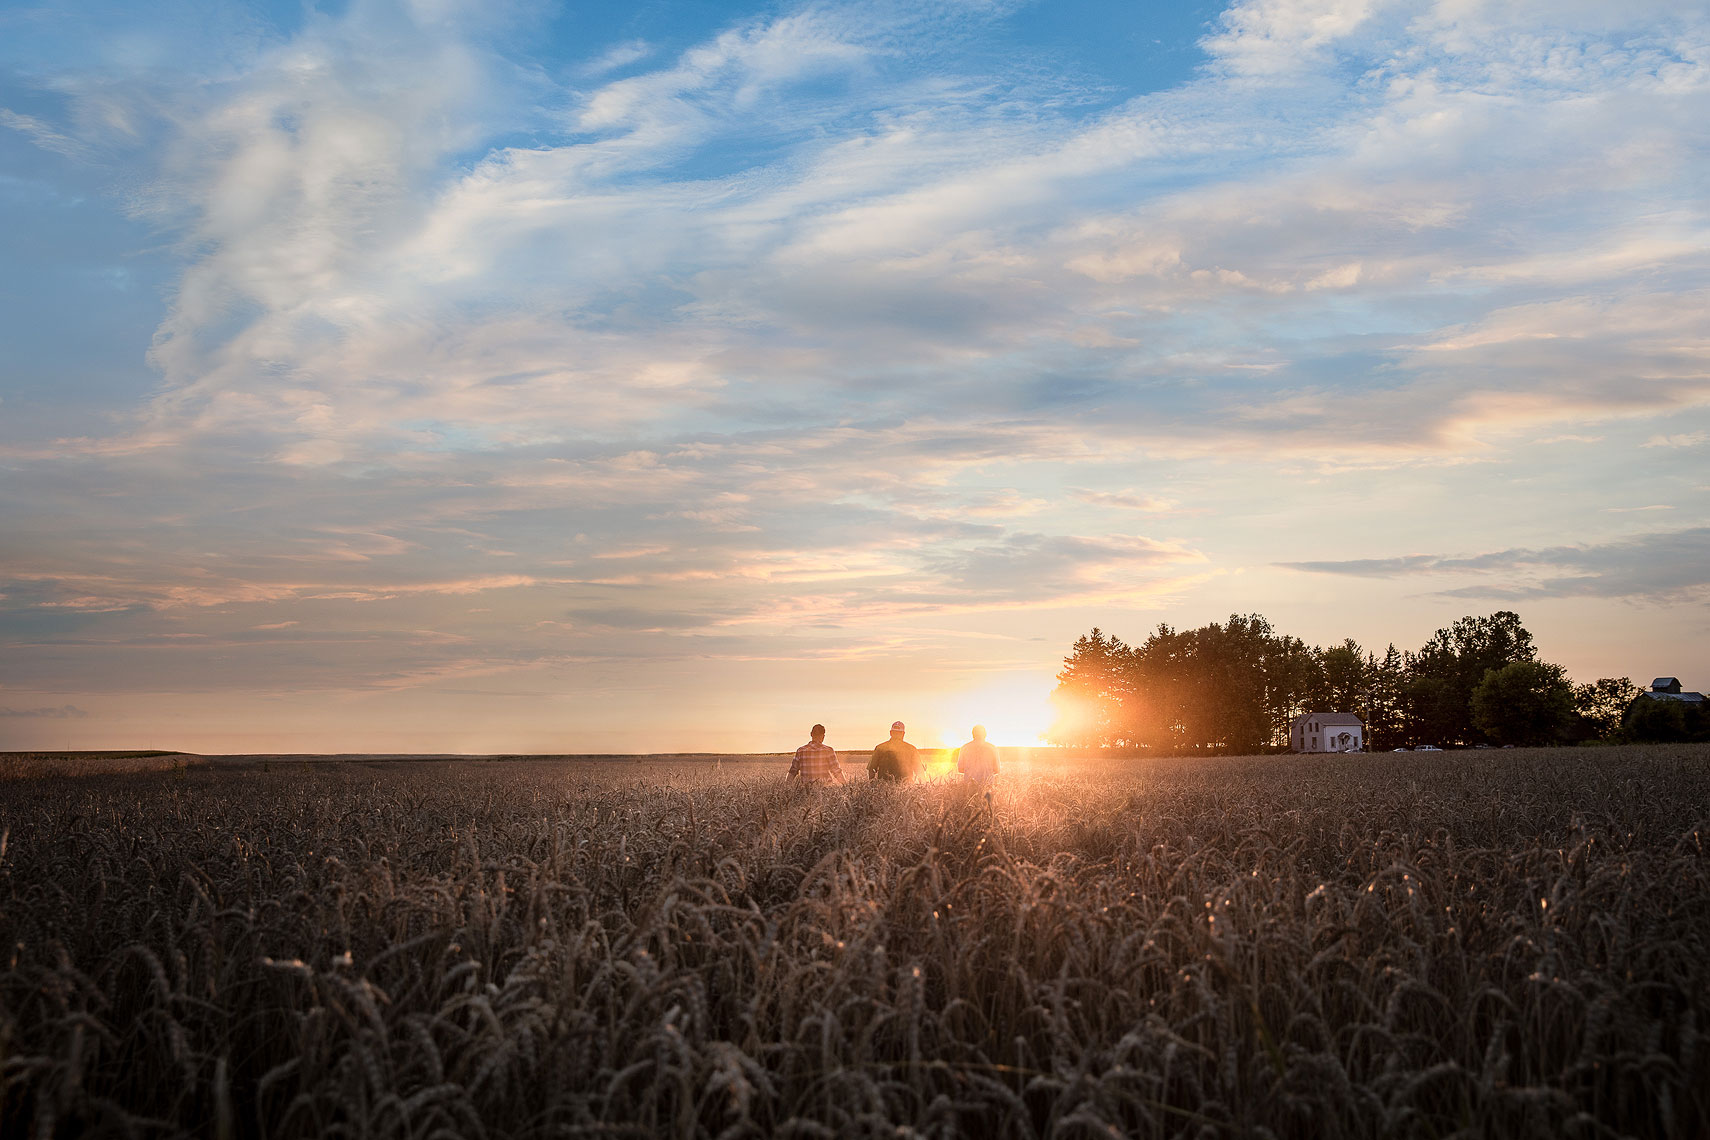 Sun setting behind a wheat field with farmers | Whiskey Acres Distillery | John Fedele Agricultural Photography